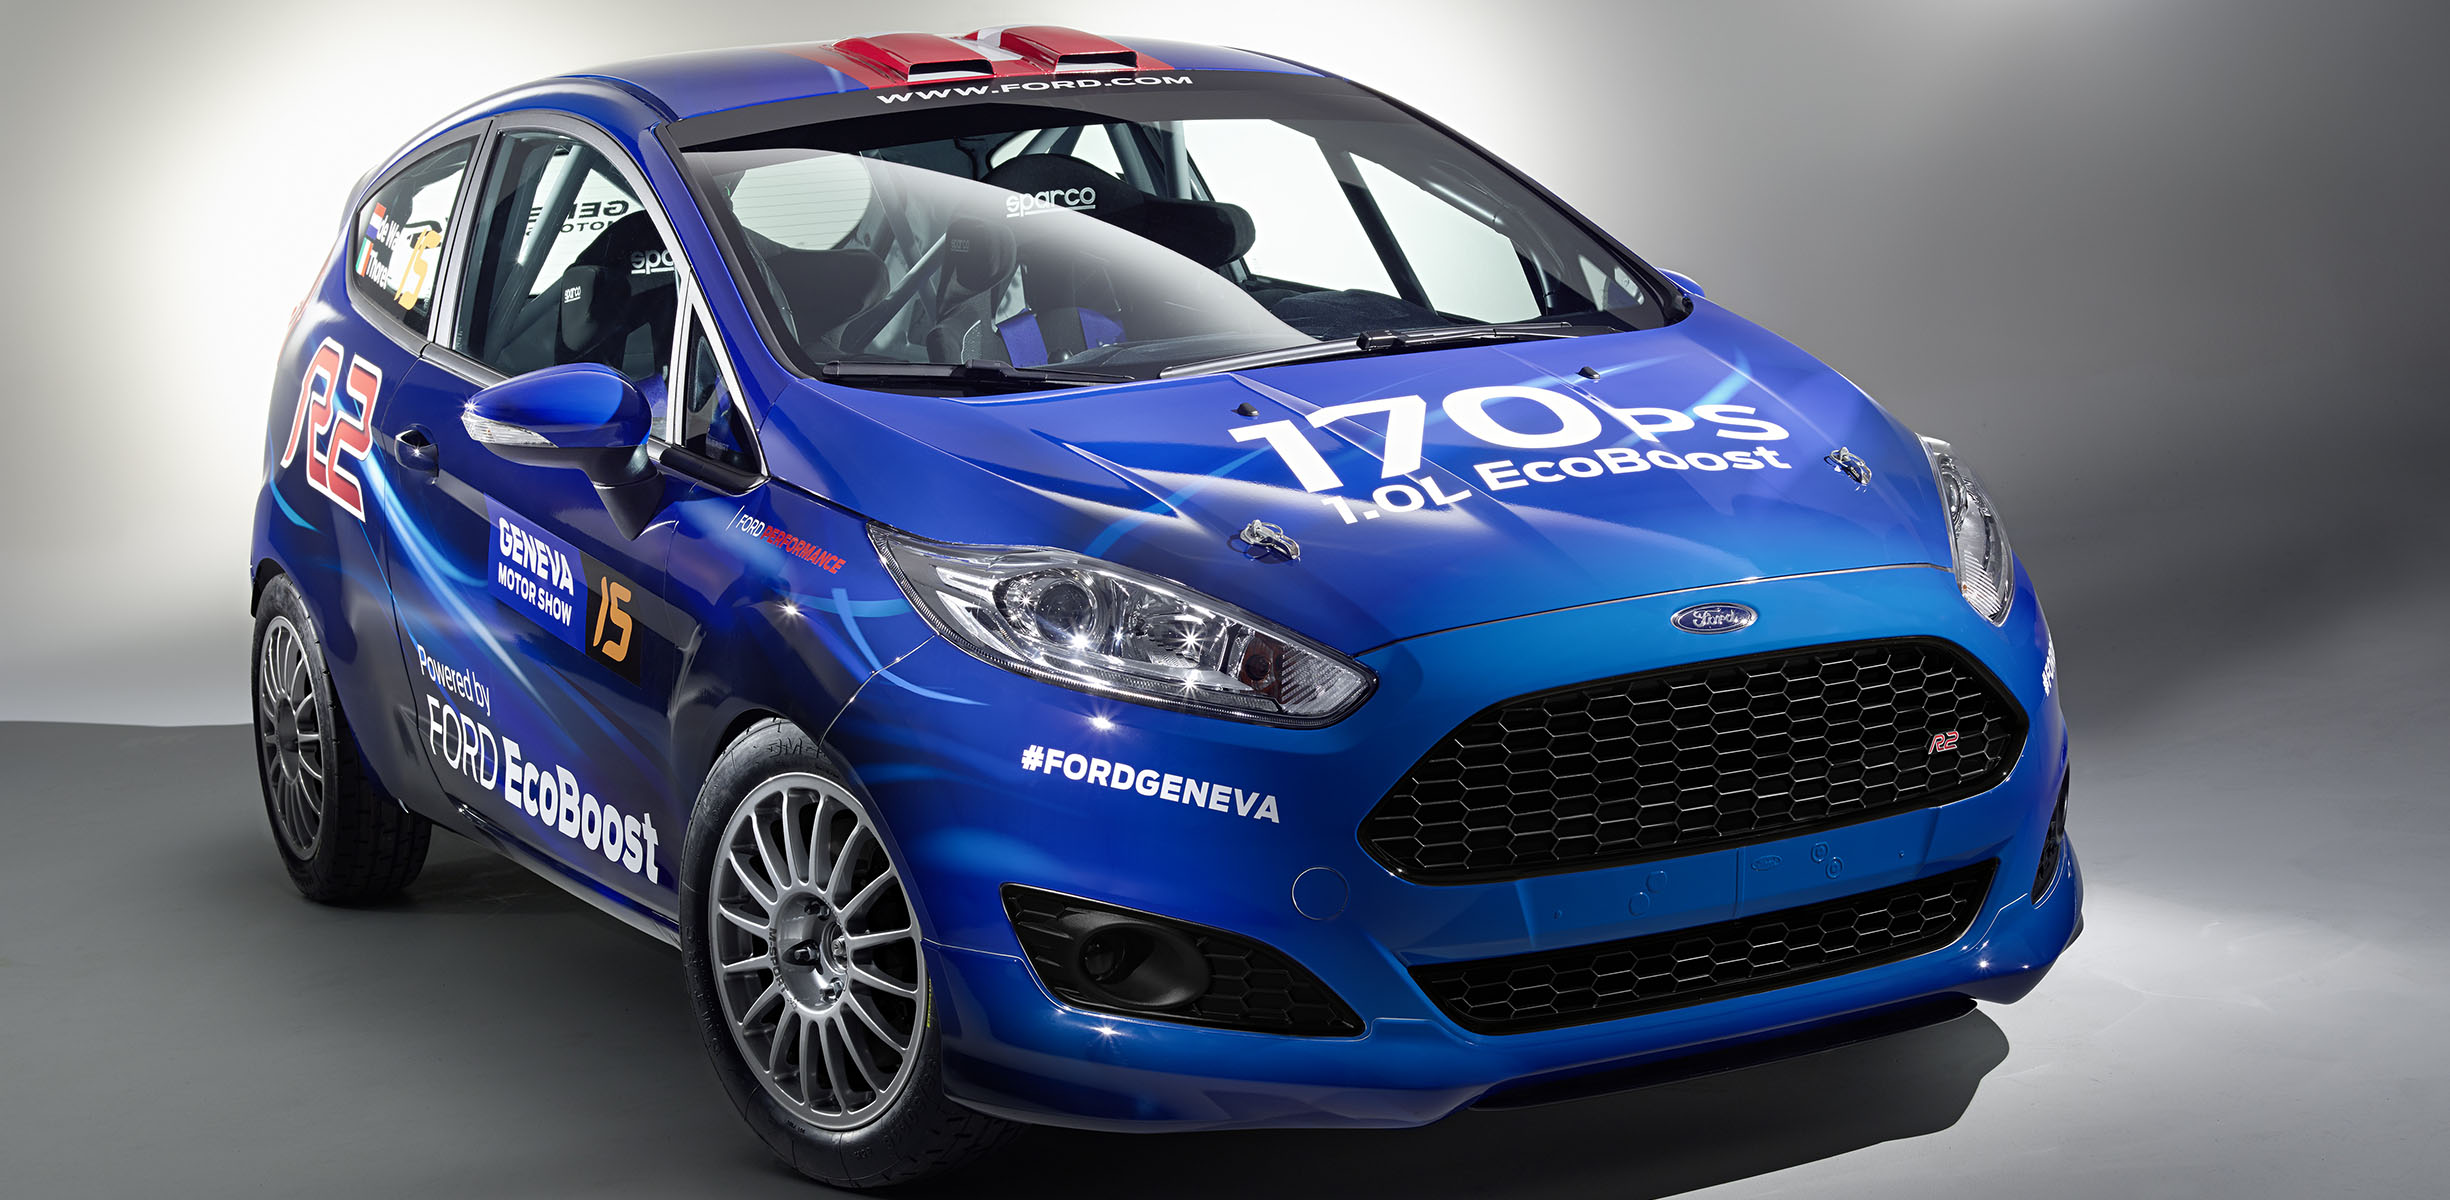 ford fiesta r2 rally car revealed no fiesta rs planned photos 1 of 3. Black Bedroom Furniture Sets. Home Design Ideas